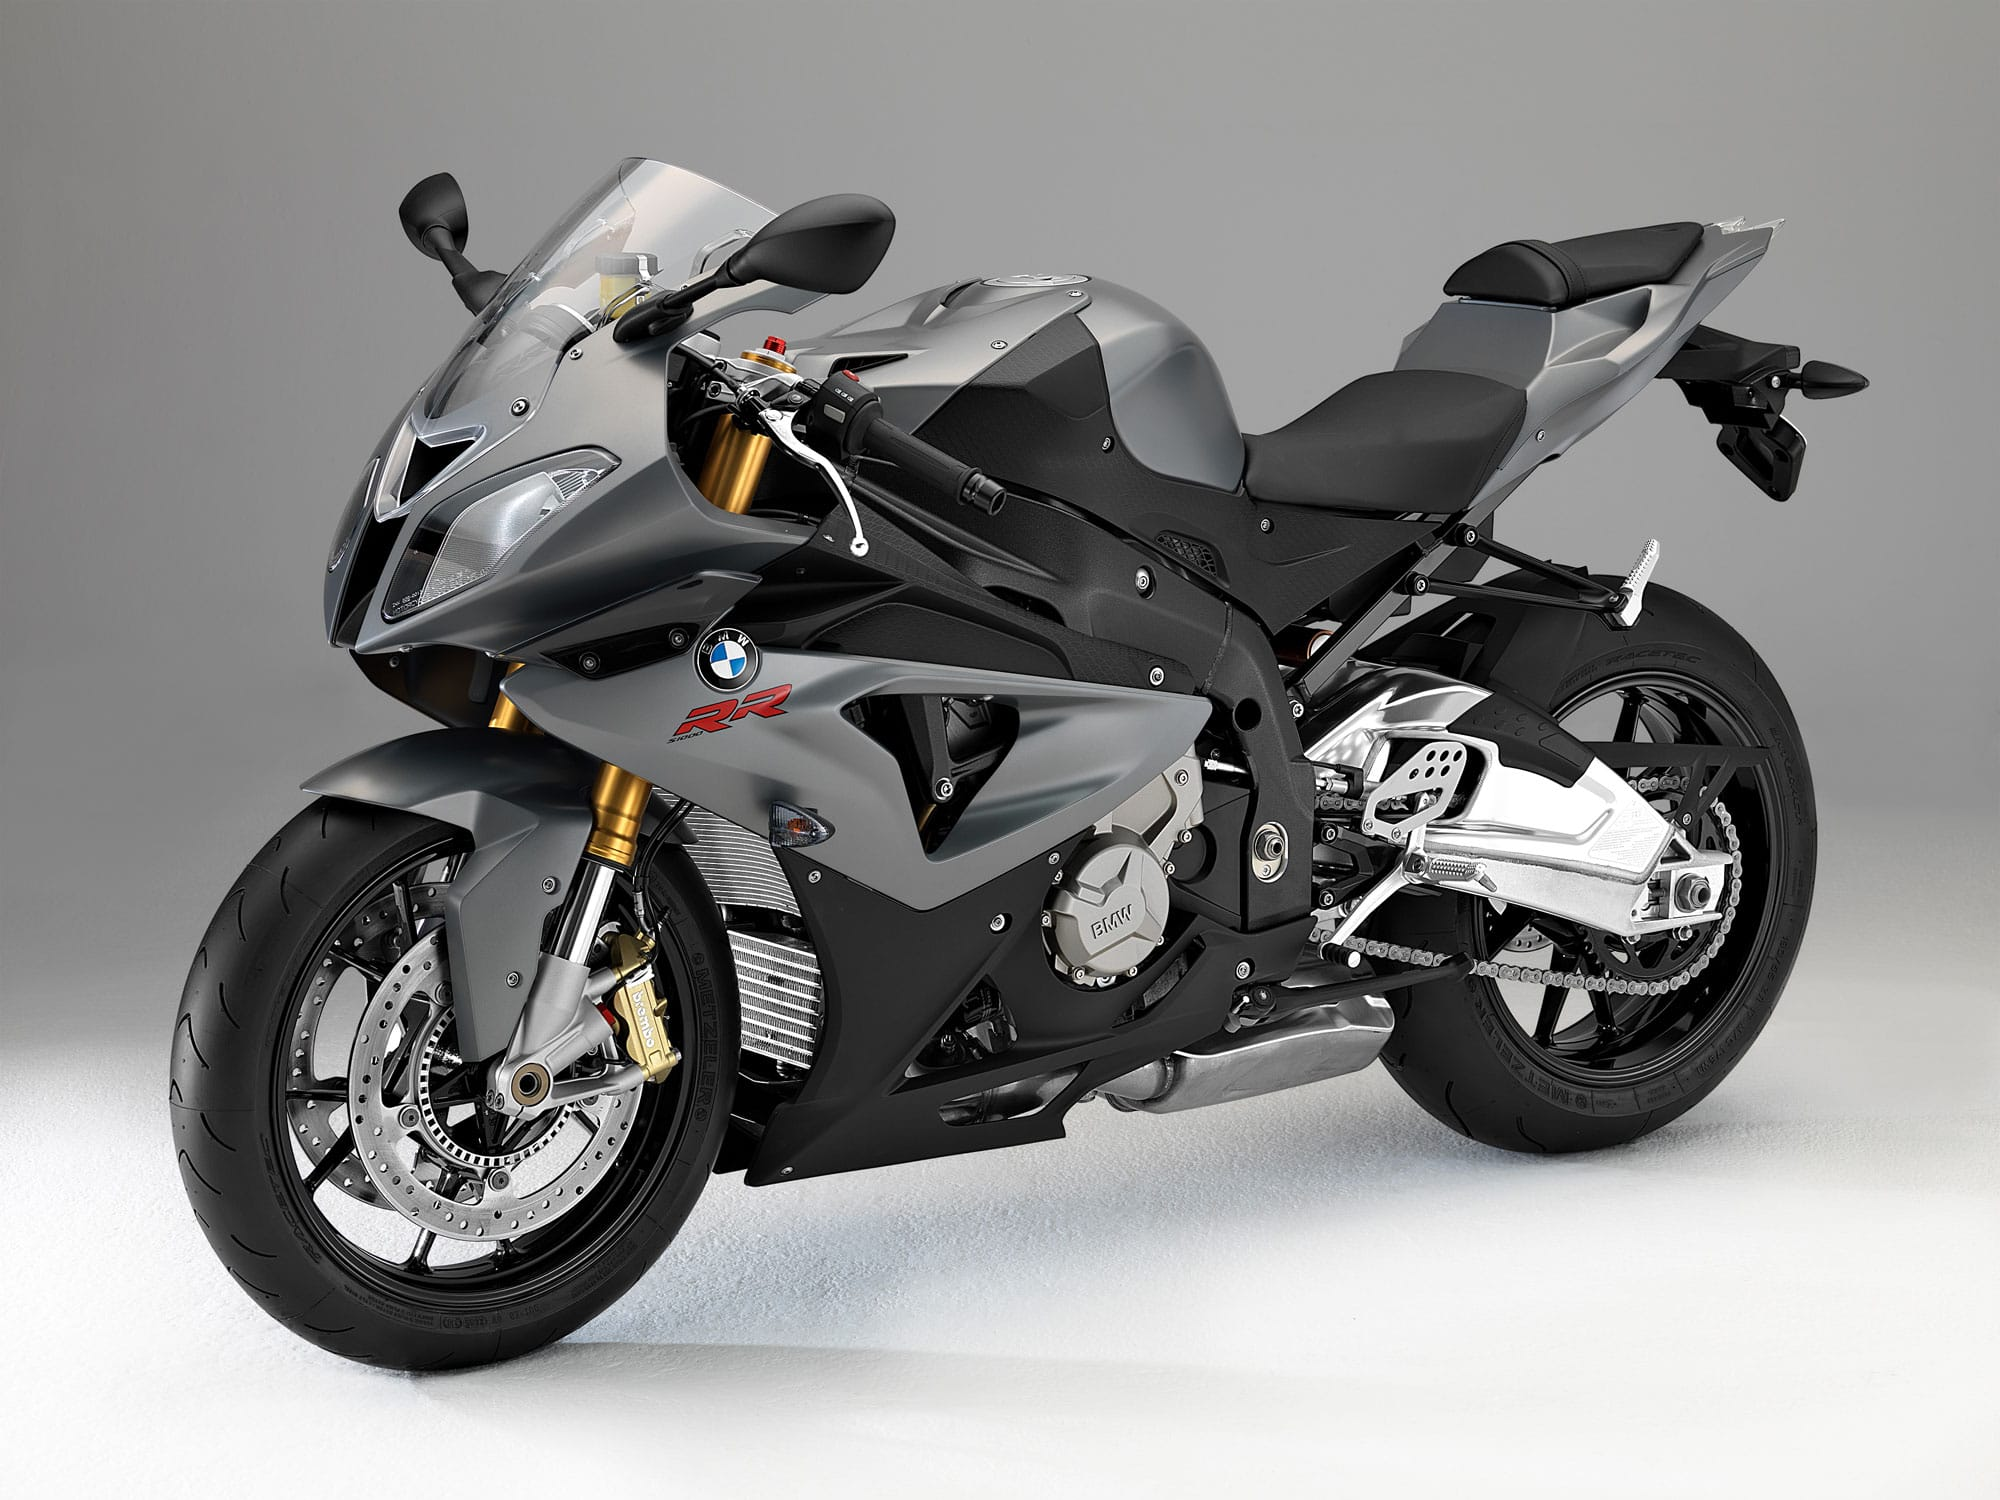 Bmw S1000 Rr Hd Wallpapers 7wallpapers Net